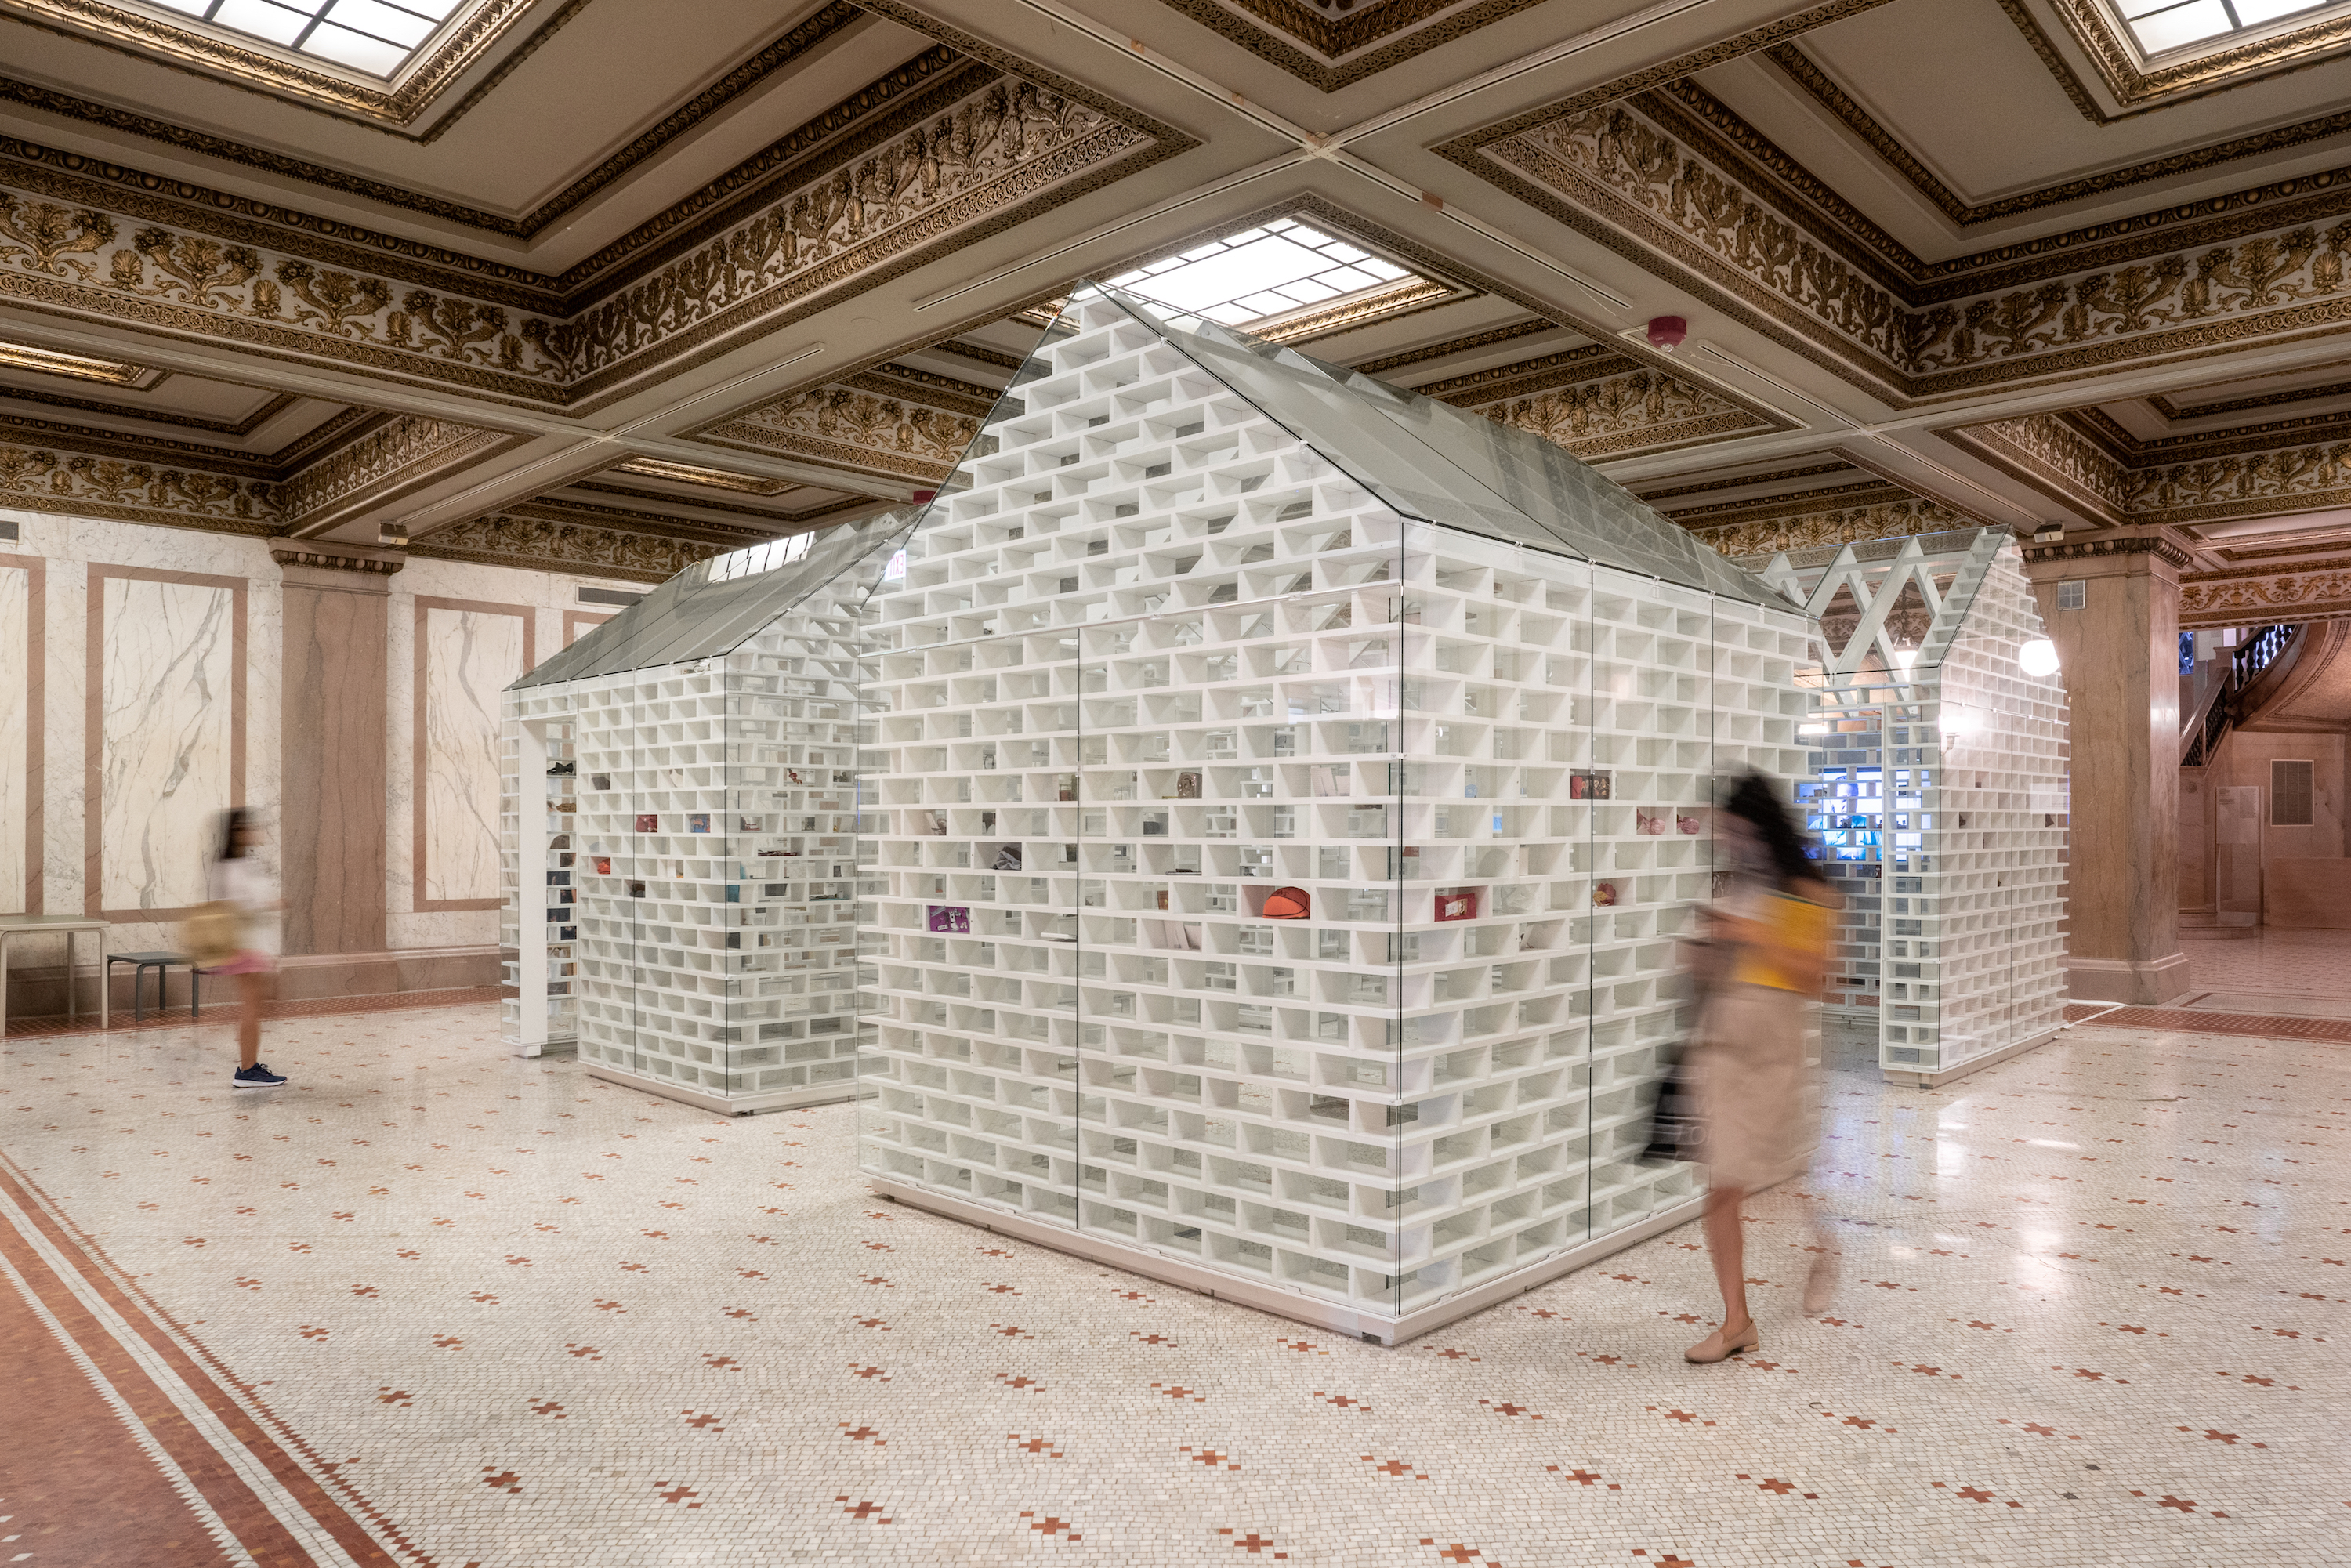 Three tiny houses made from glass bricks inside of a neo-classical building with a tiled floor and coffered ceiling